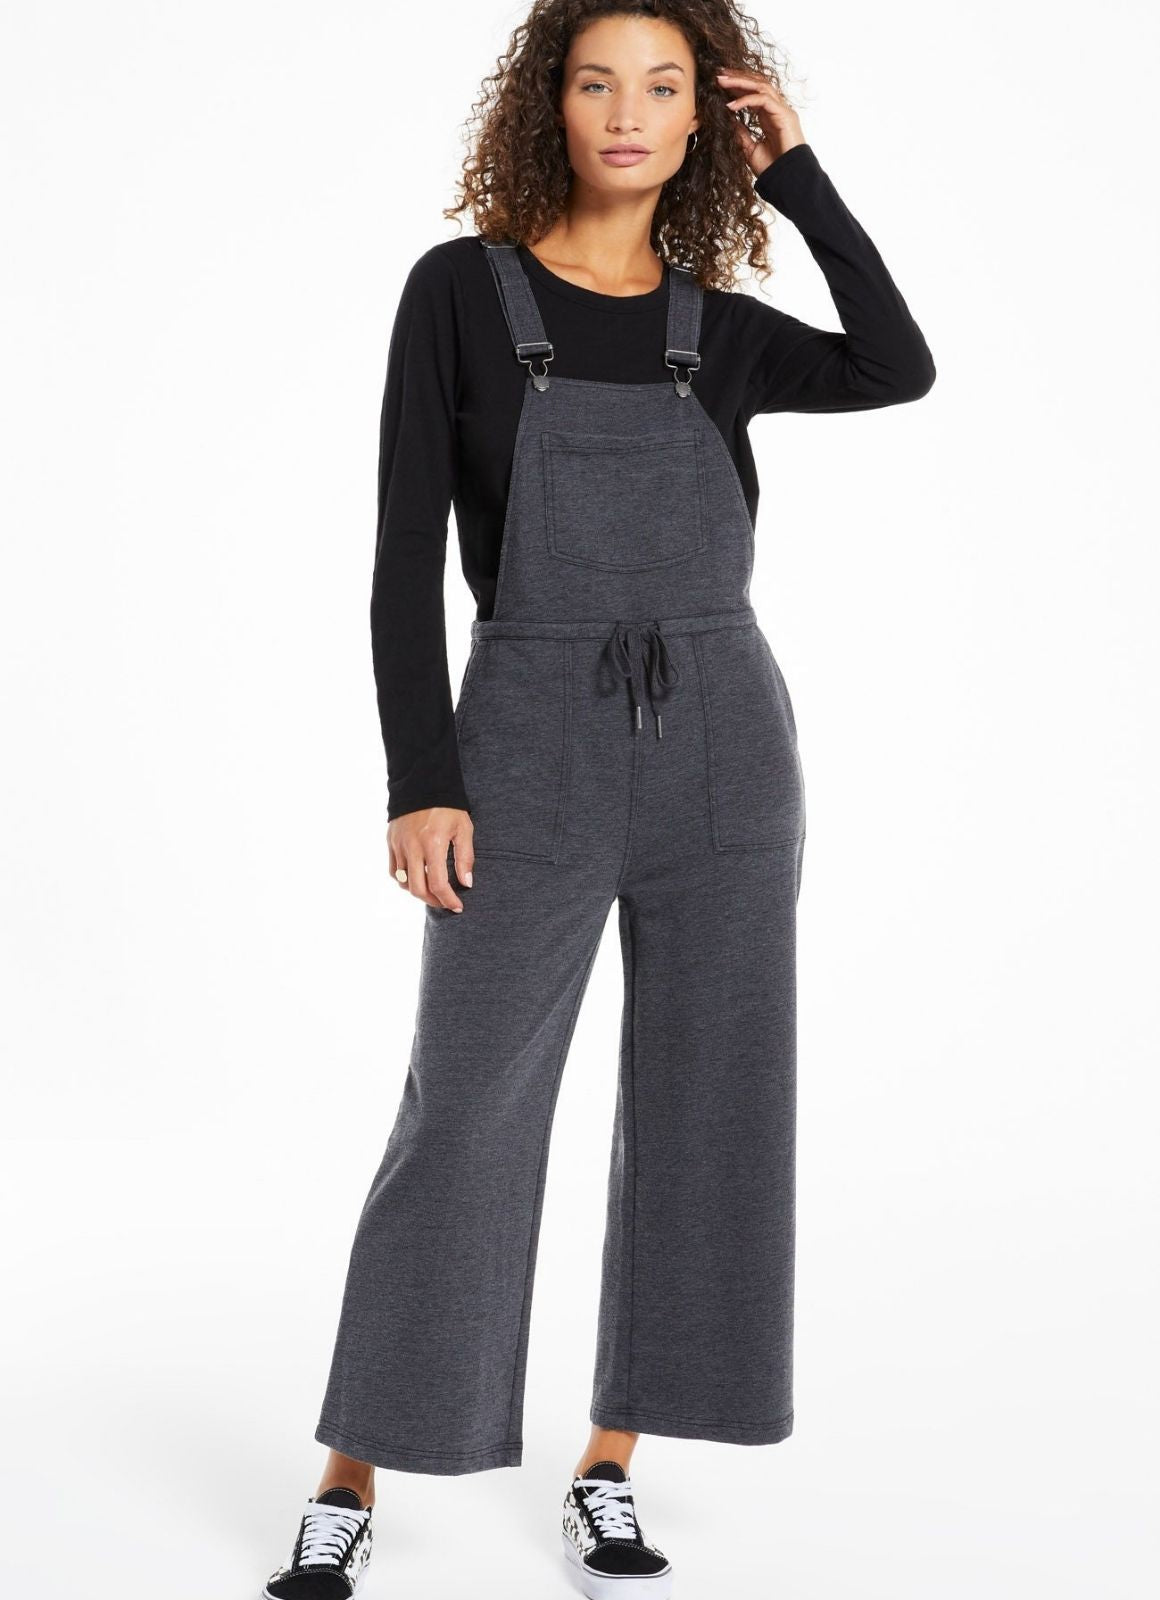 Z Supply - Cinched Waist Overalls